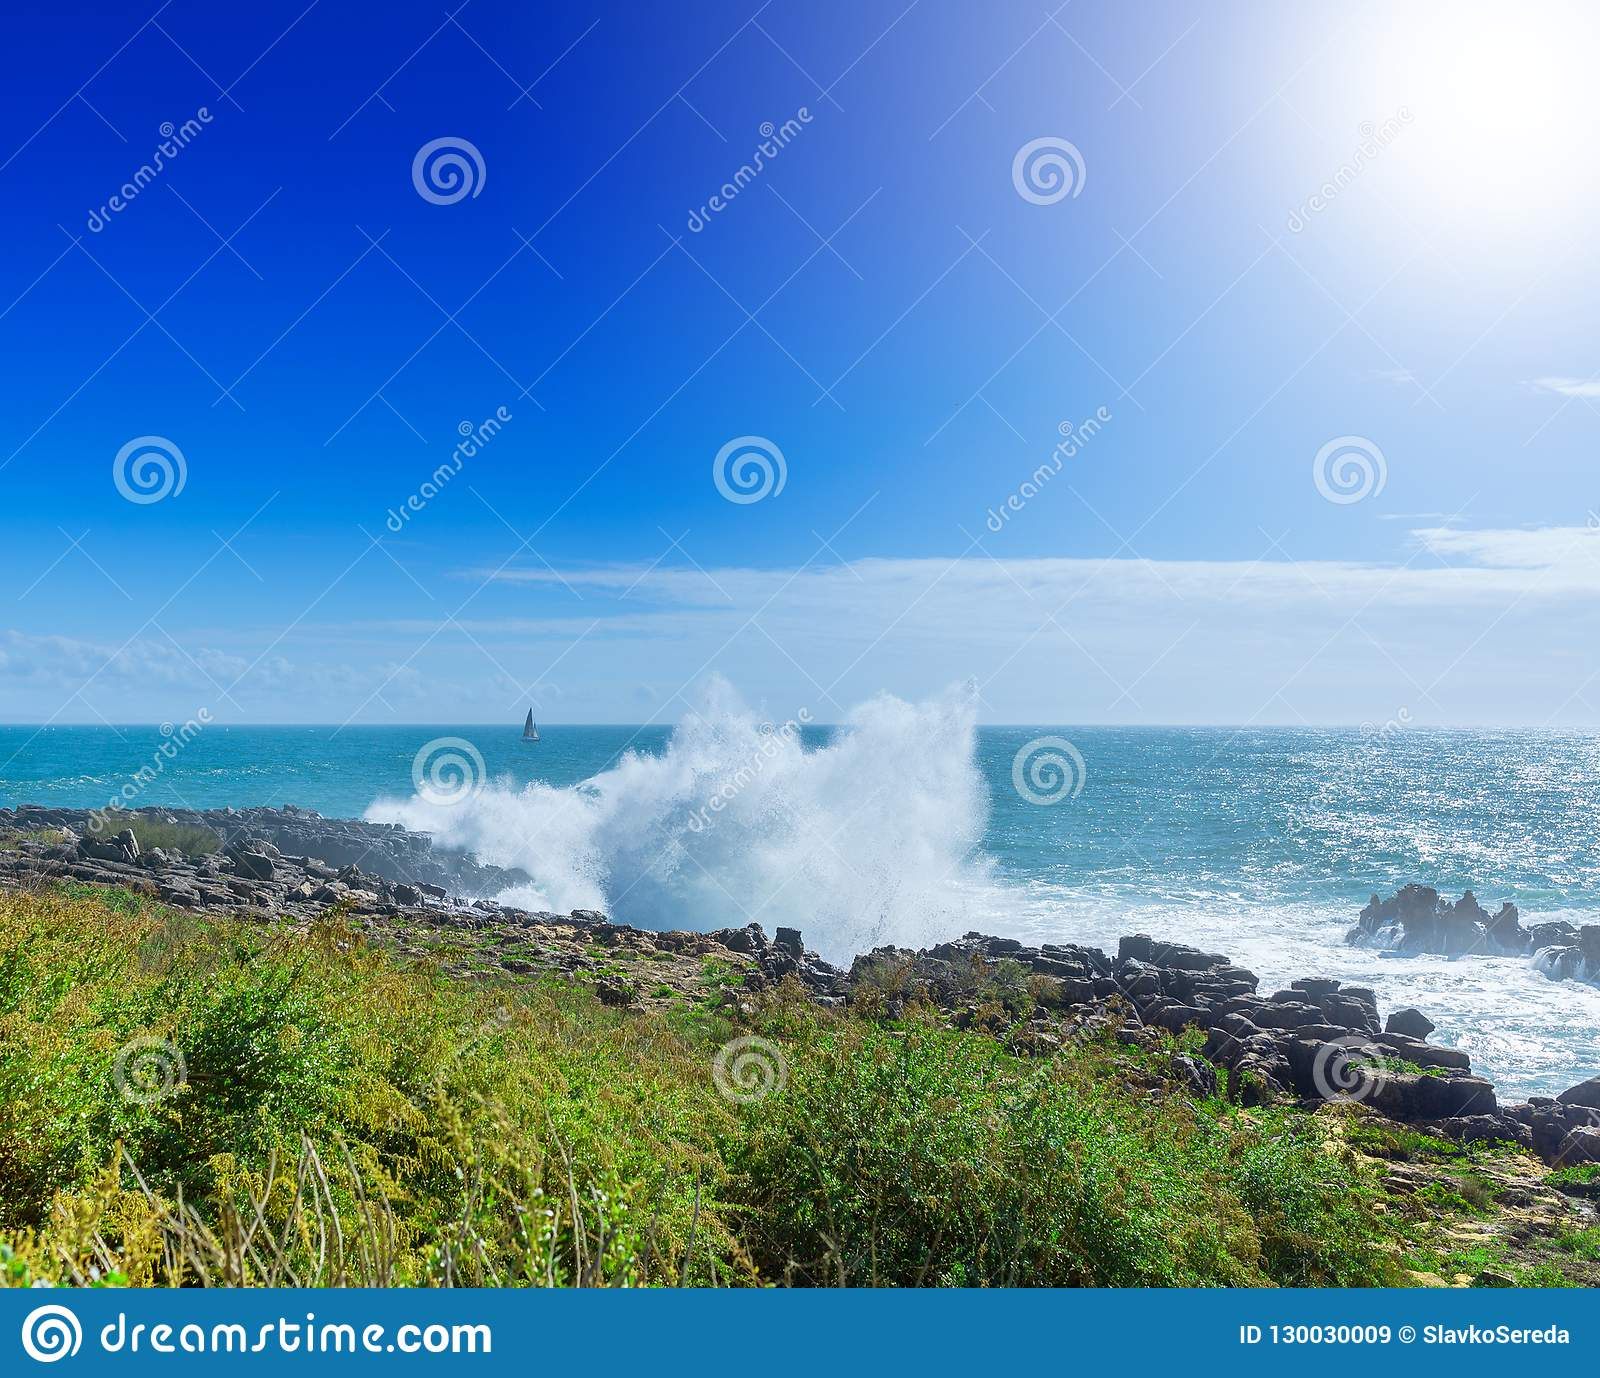 The cliffs on the coast of the Atlantic Ocean. Ocean waves, Cascais, Portugal. Beauty in nature. Beautiful marine landscape in ba